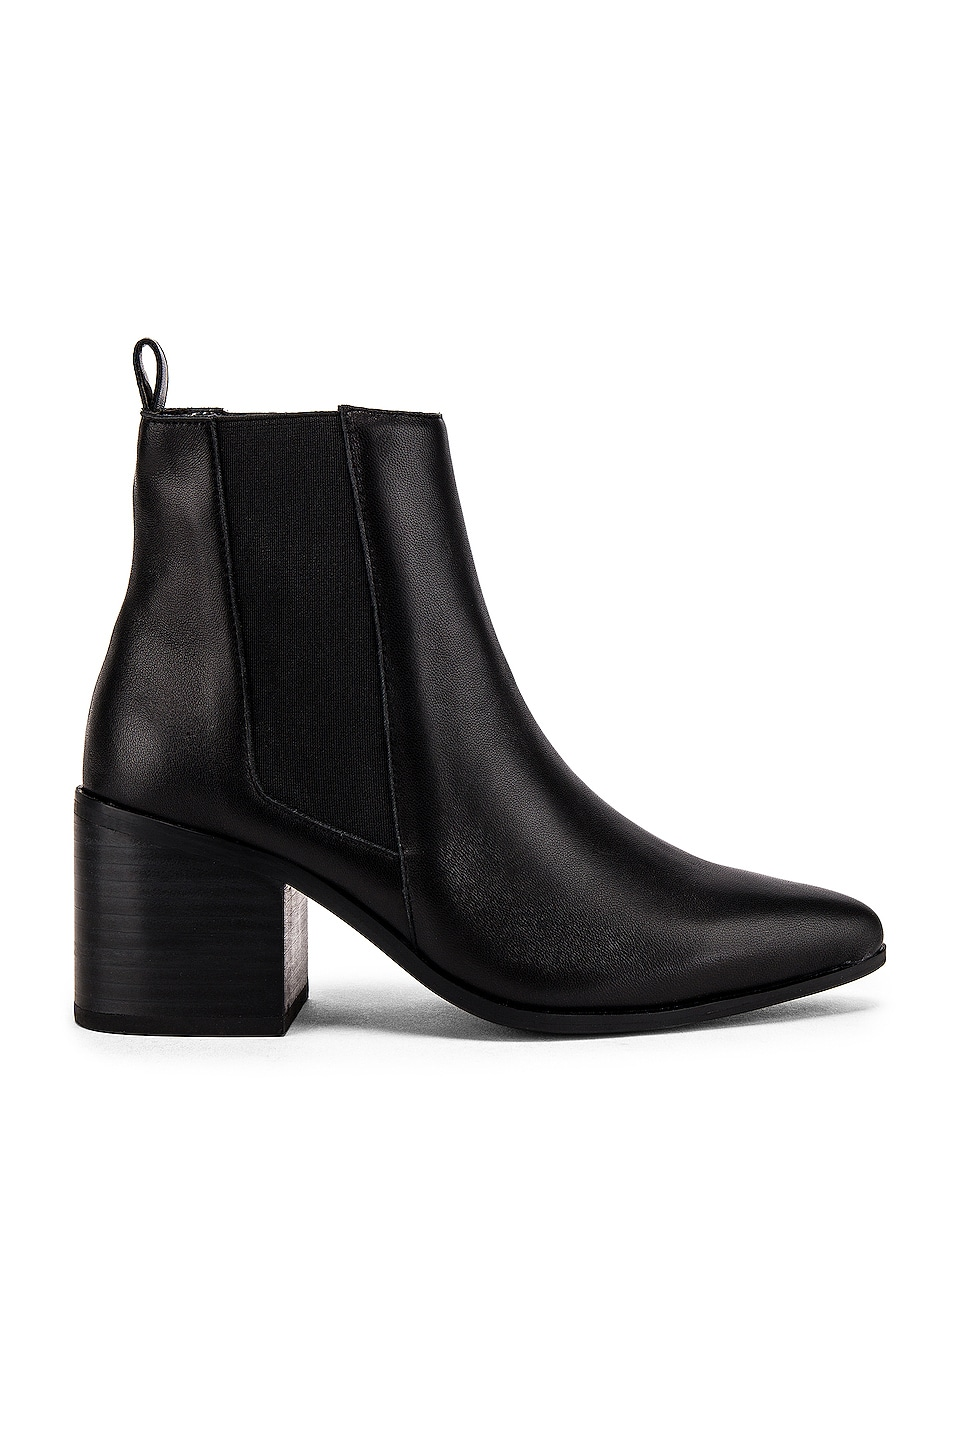 RAYE Yvette Bootie in Black